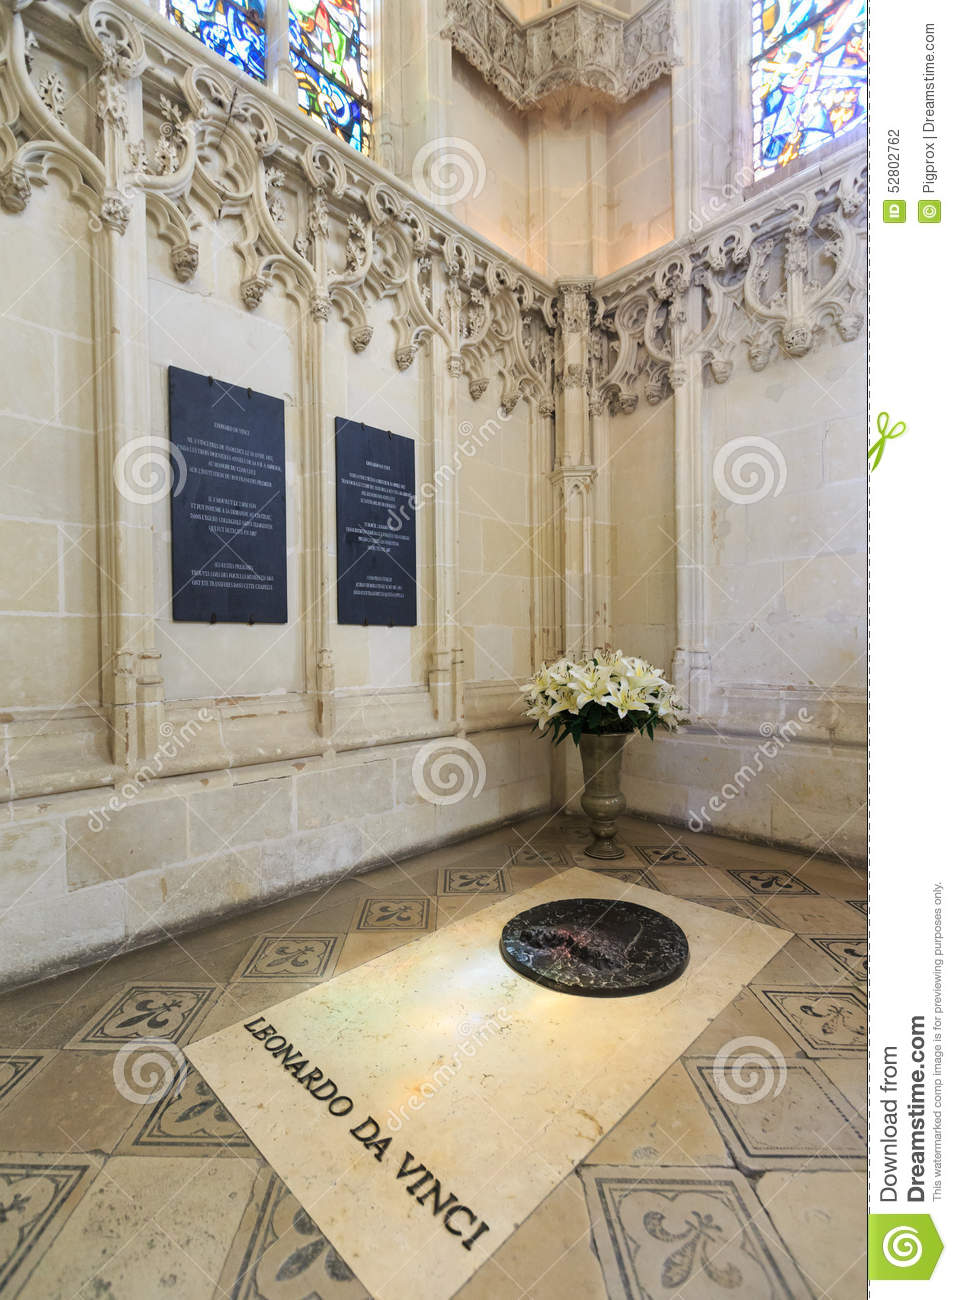 Chateau Amboise Interior Photos Free Royalty Free Stock Photos From Dreamstime